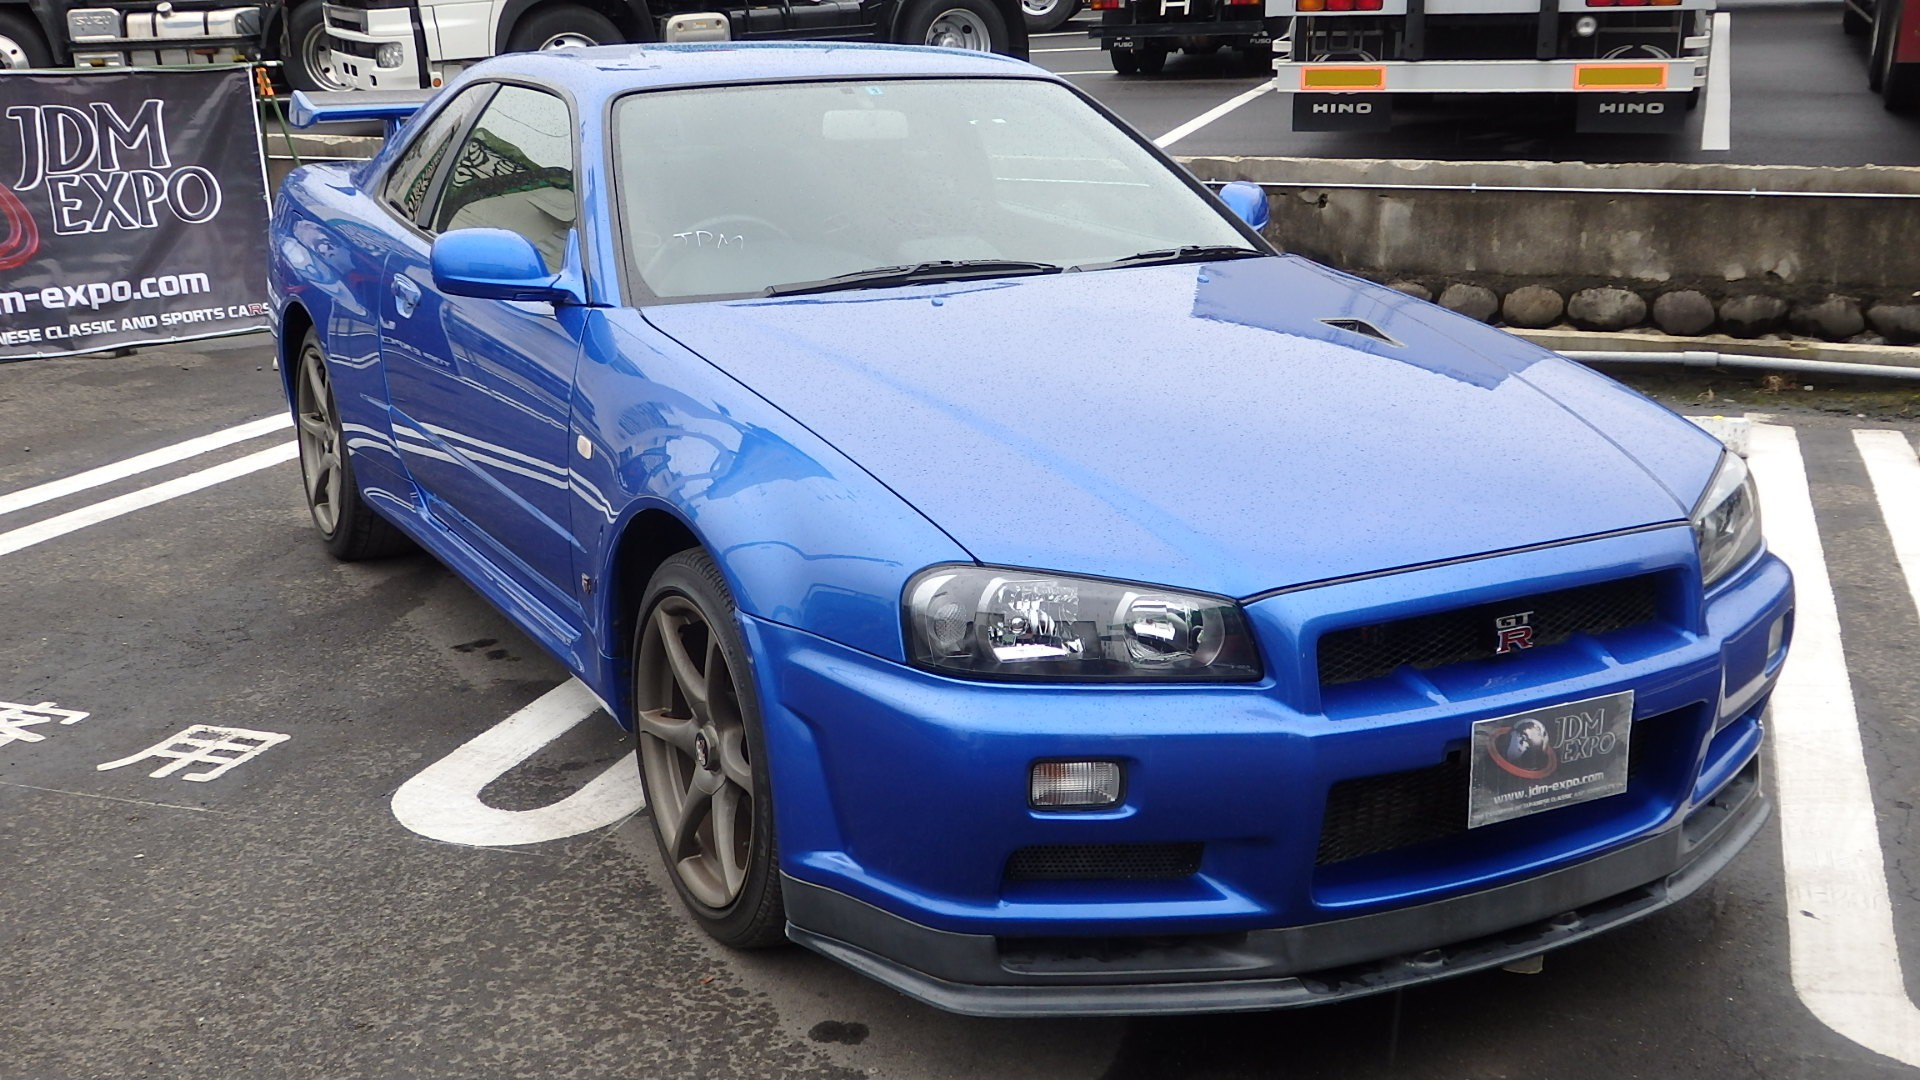 Nissan Skyline GTR R34 V-Spec II NUR for sale in Japan